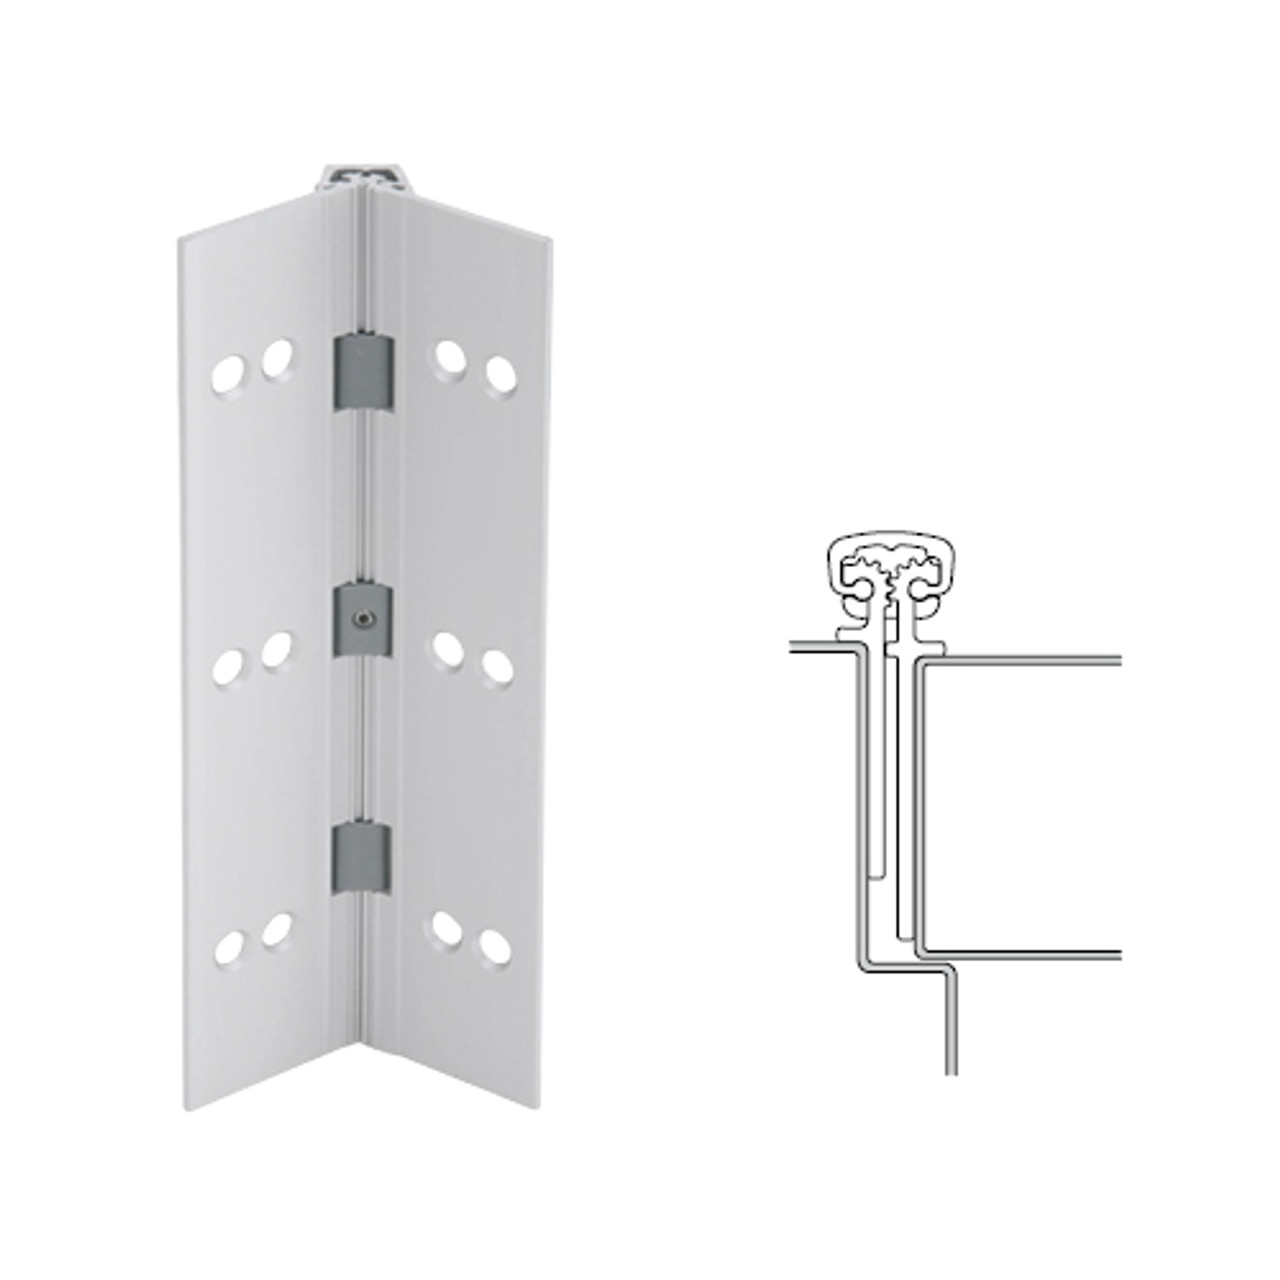 026XY-US28-85-WD IVES Full Mortise Continuous Geared Hinges with Wood Screws in Satin Aluminum